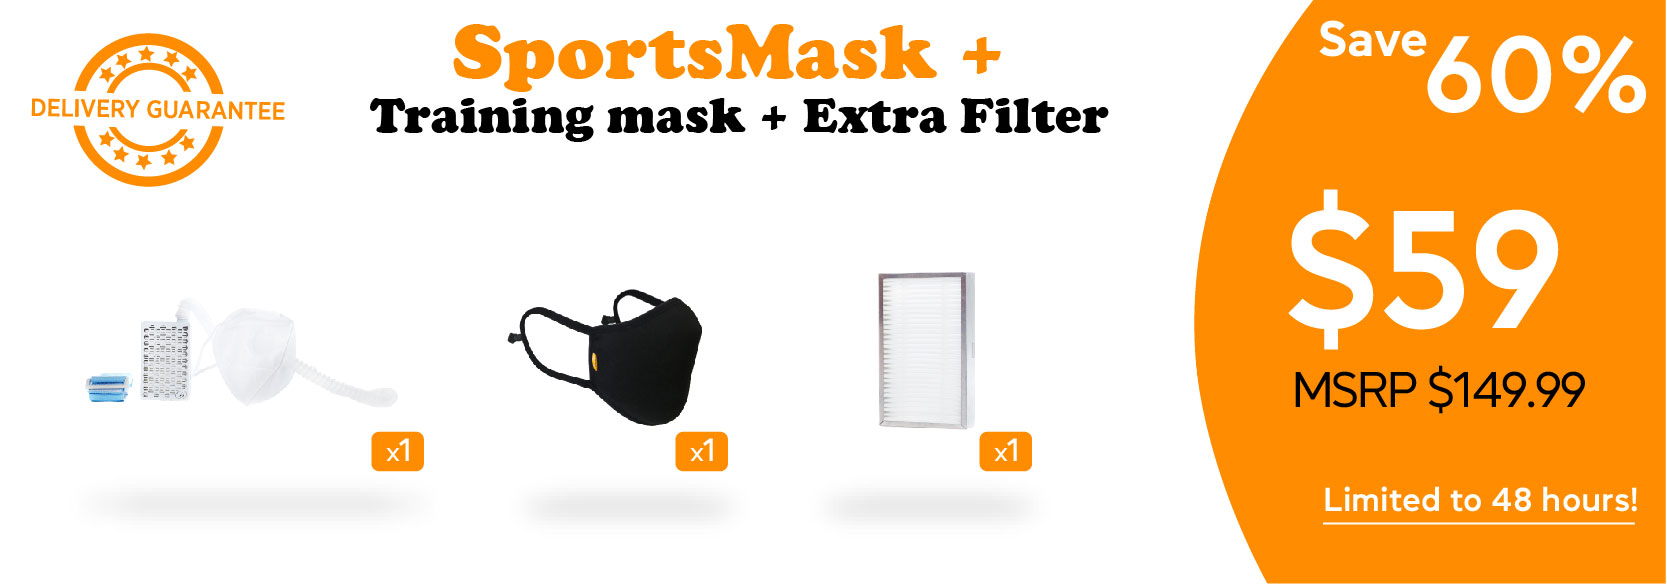 perk posters_Sports Mask+Training Mask+Extra Filters